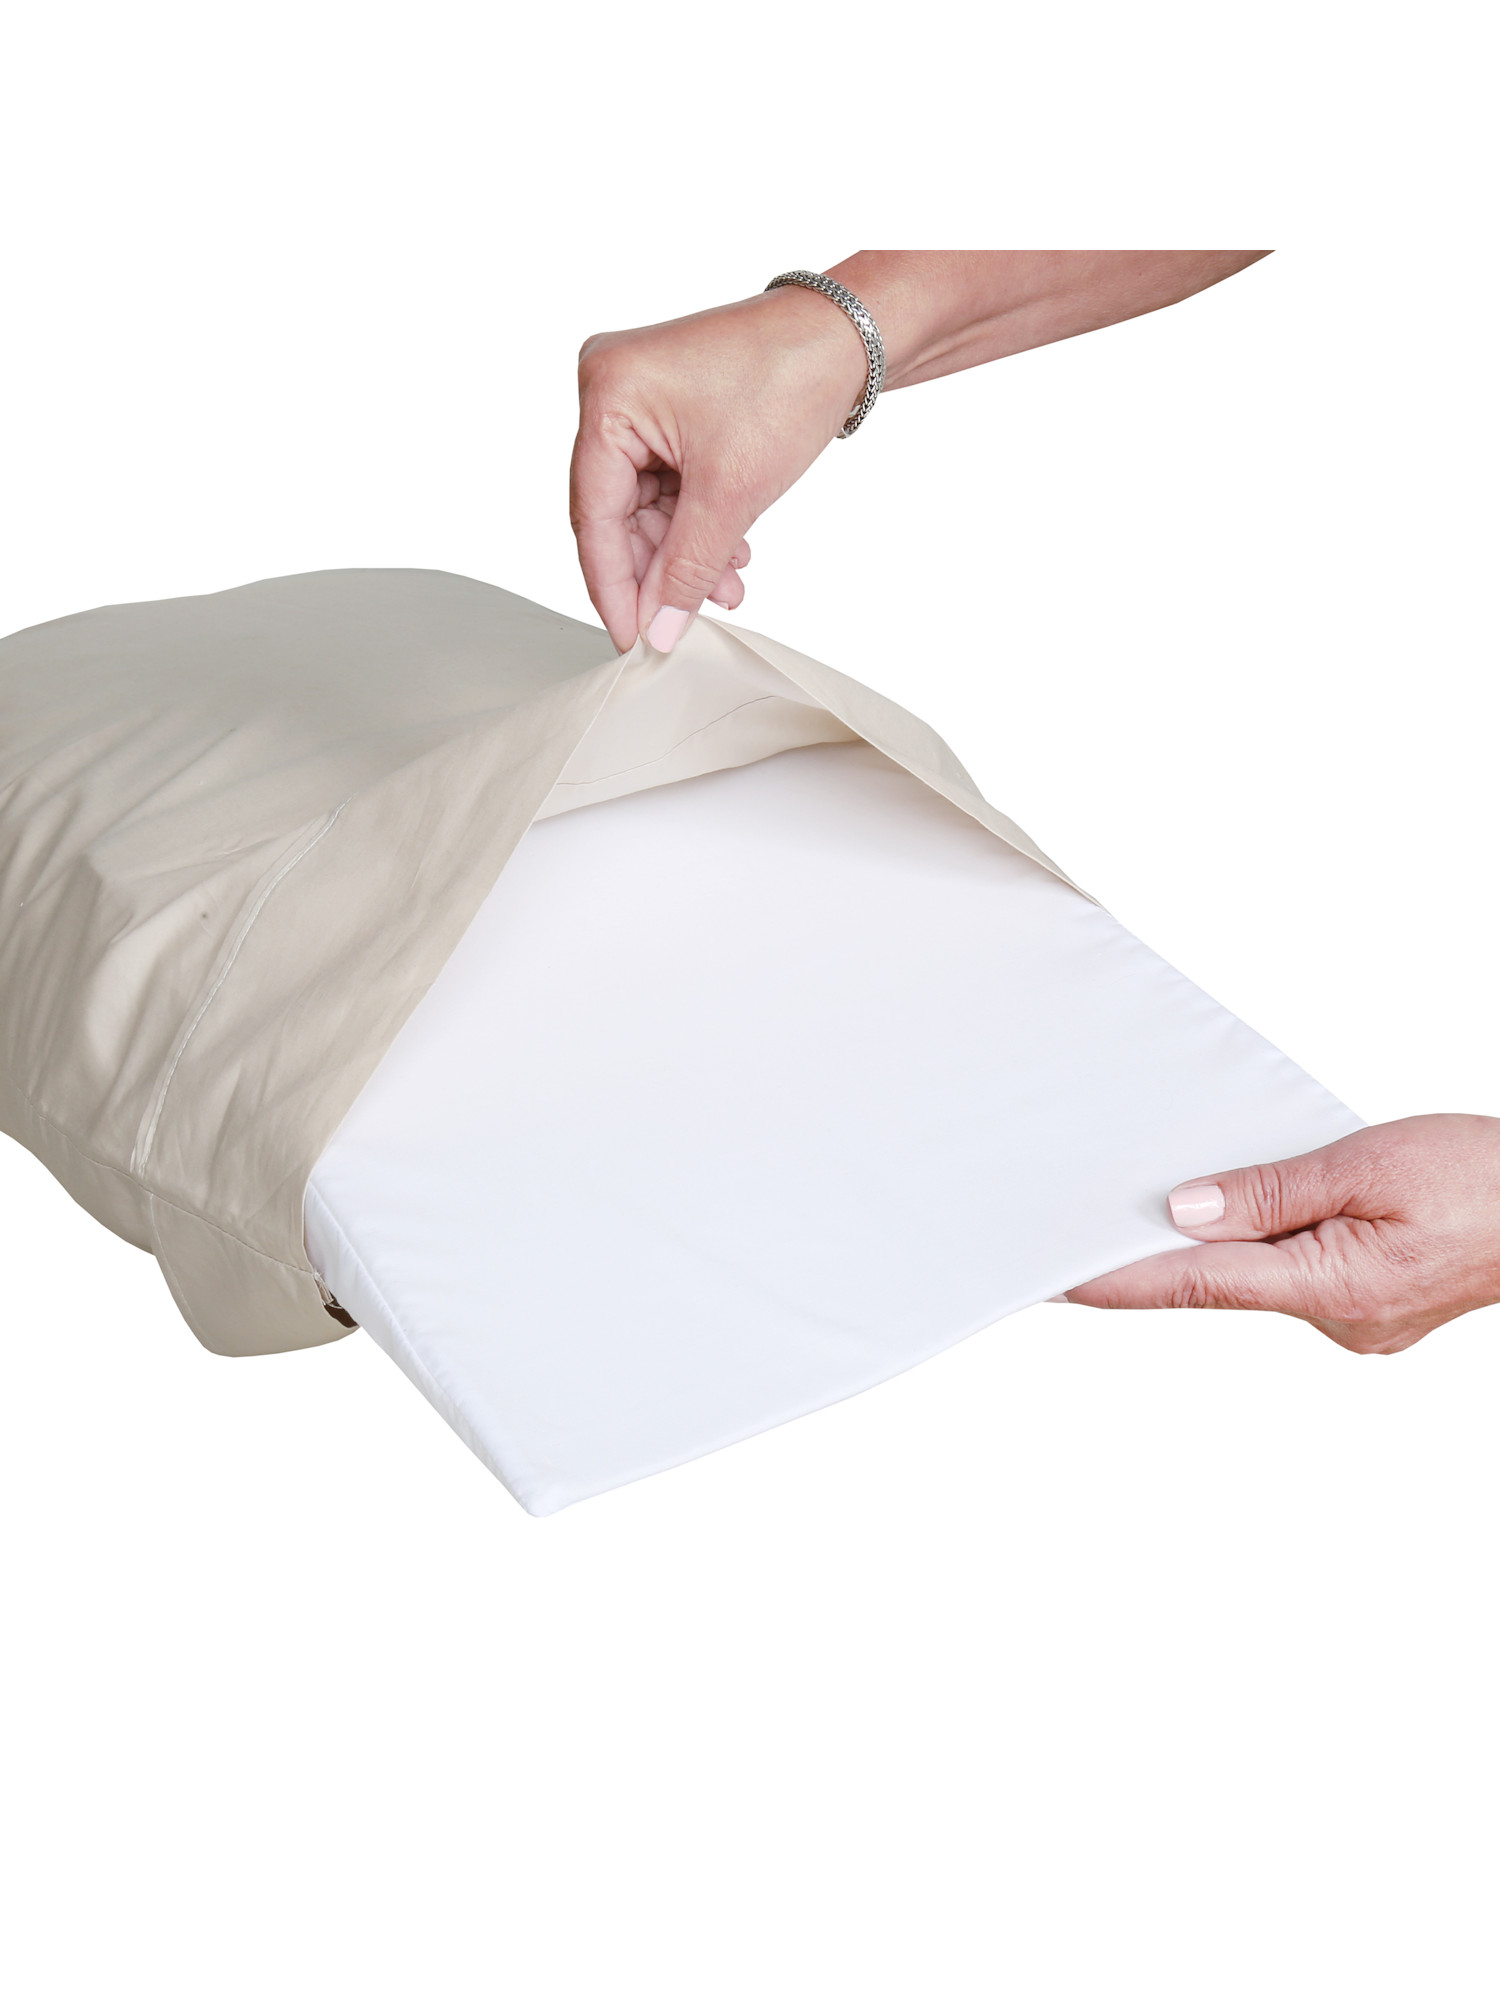 windsor direct distribution silent sleeper anti snore pillow angled cushion promotes clear airway to reduce snoring fits inside pillowcase